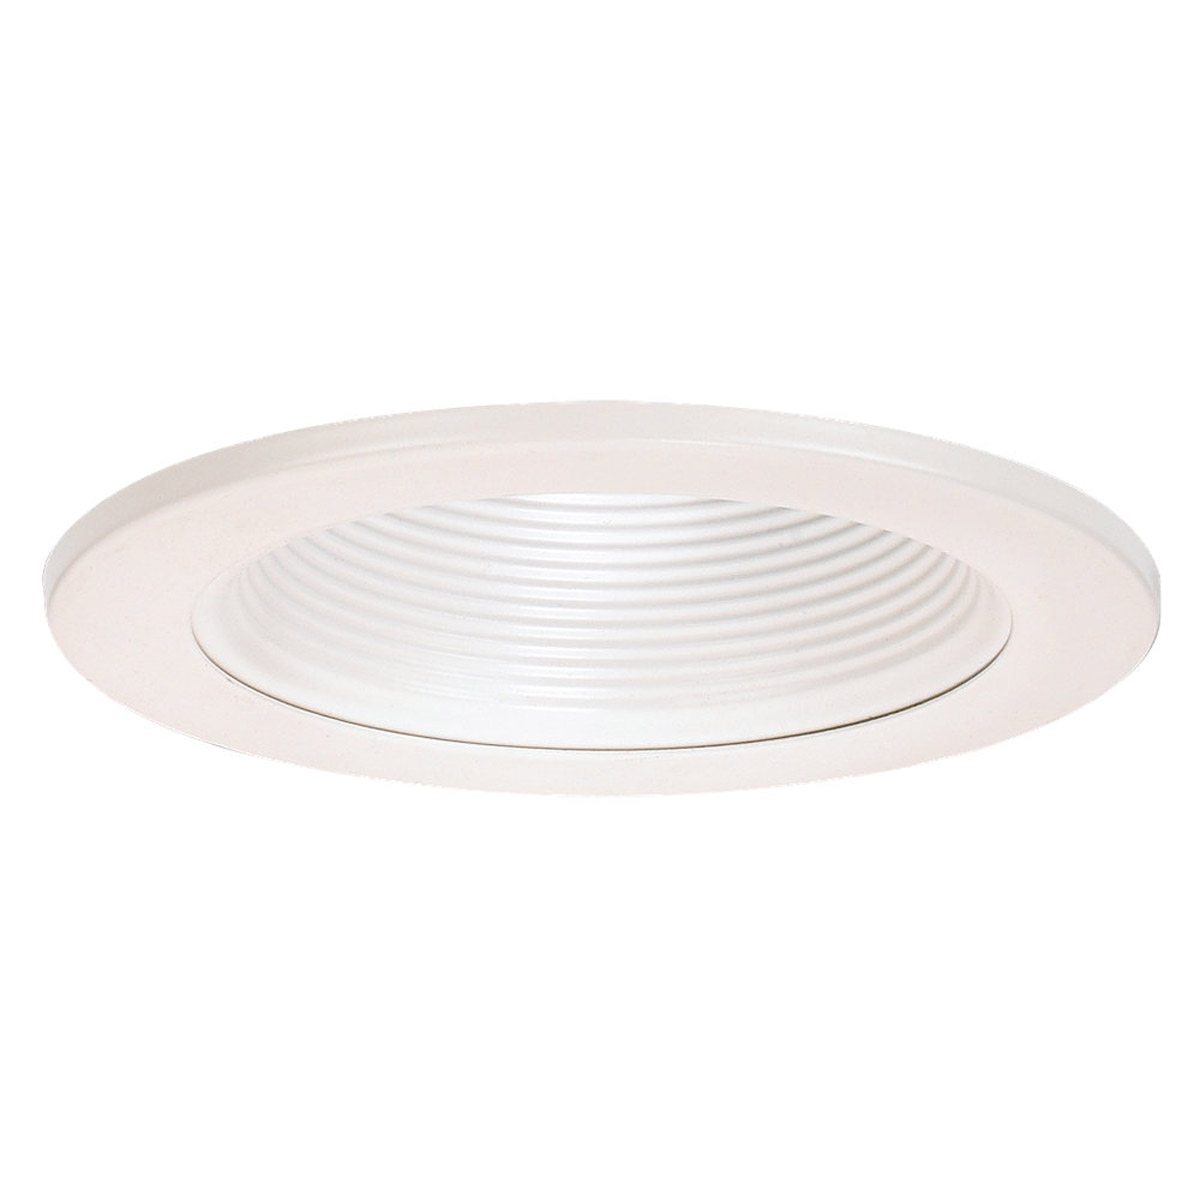 Sea Gull Lighting Signature Recessed Trim Only in White 1226AT-14 photo